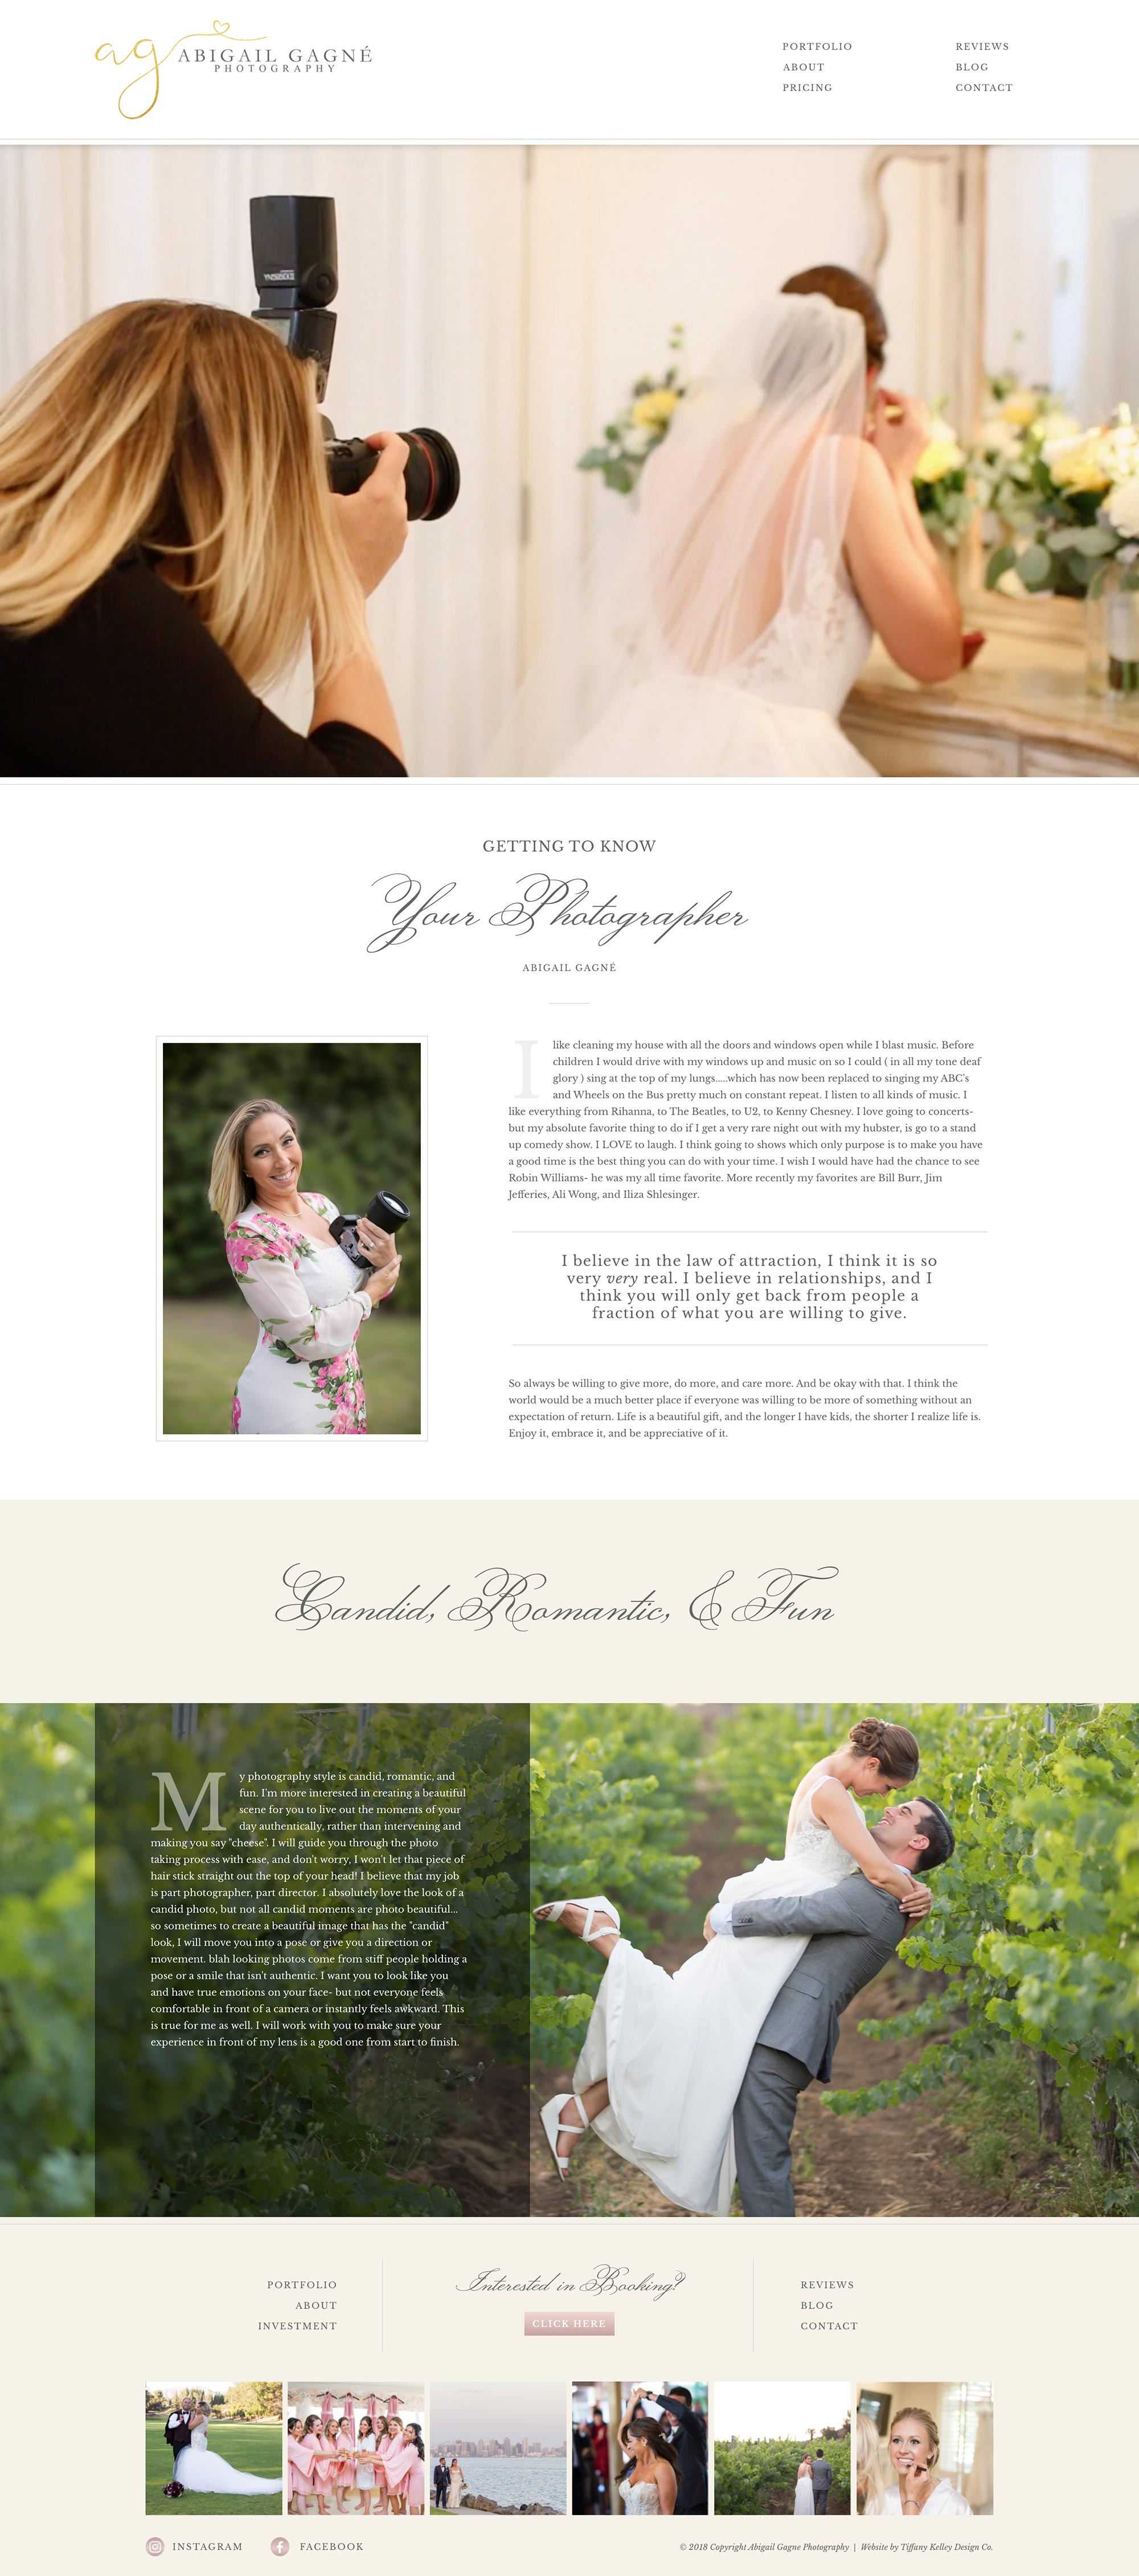 about web design abigail gagne photography